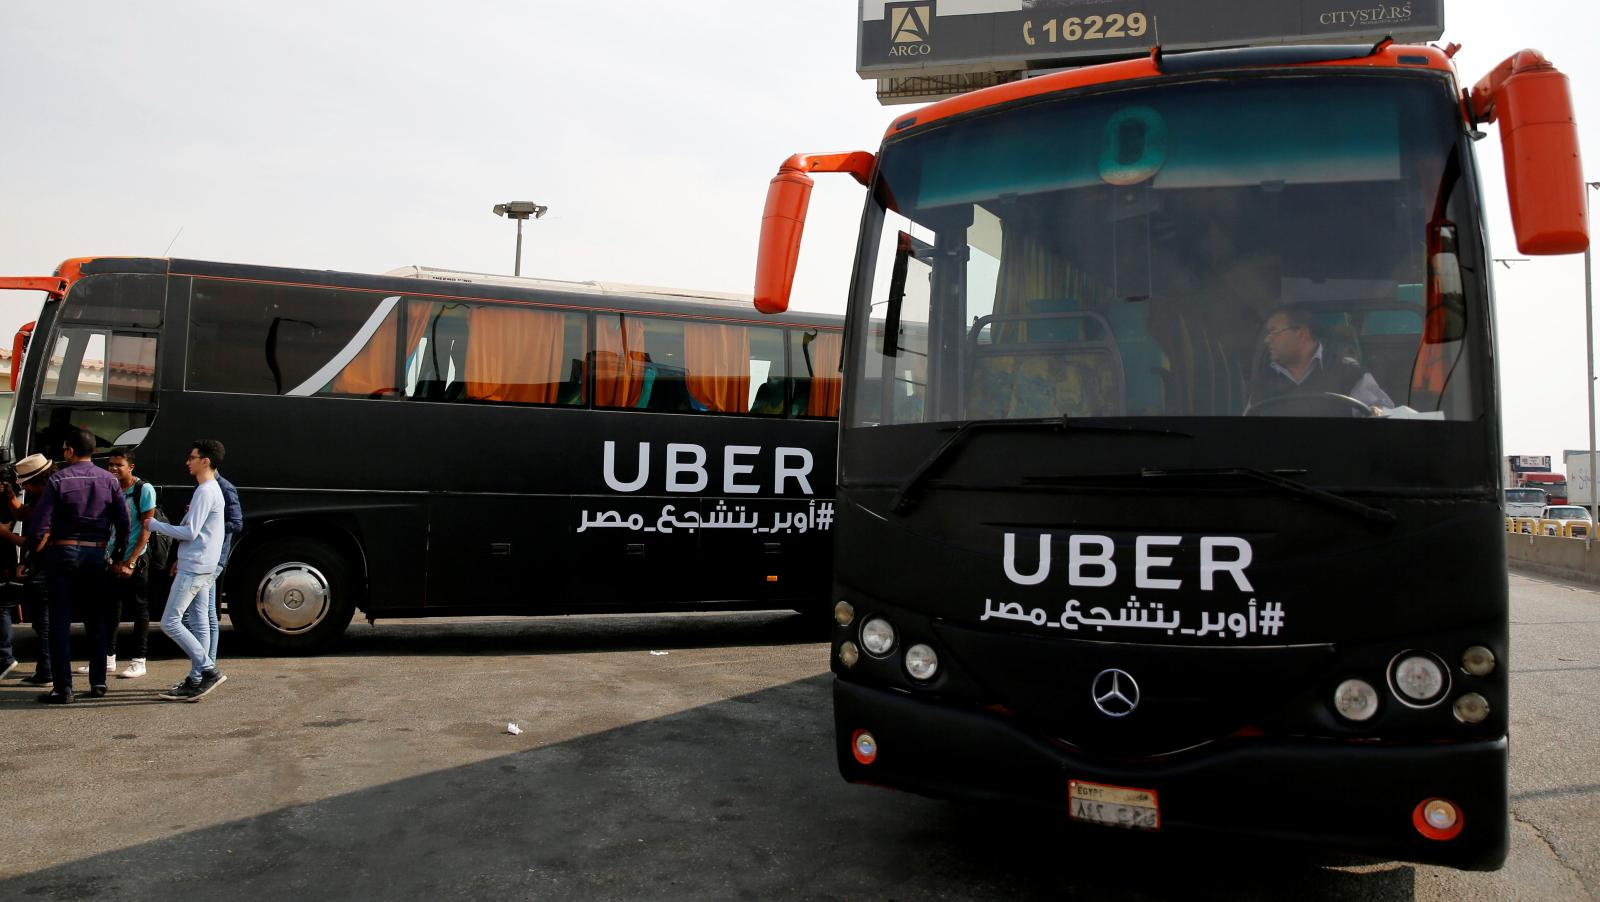 In Cairo, Egypt, Uber Launches a Minibus System to Facilitate Traffic Flow